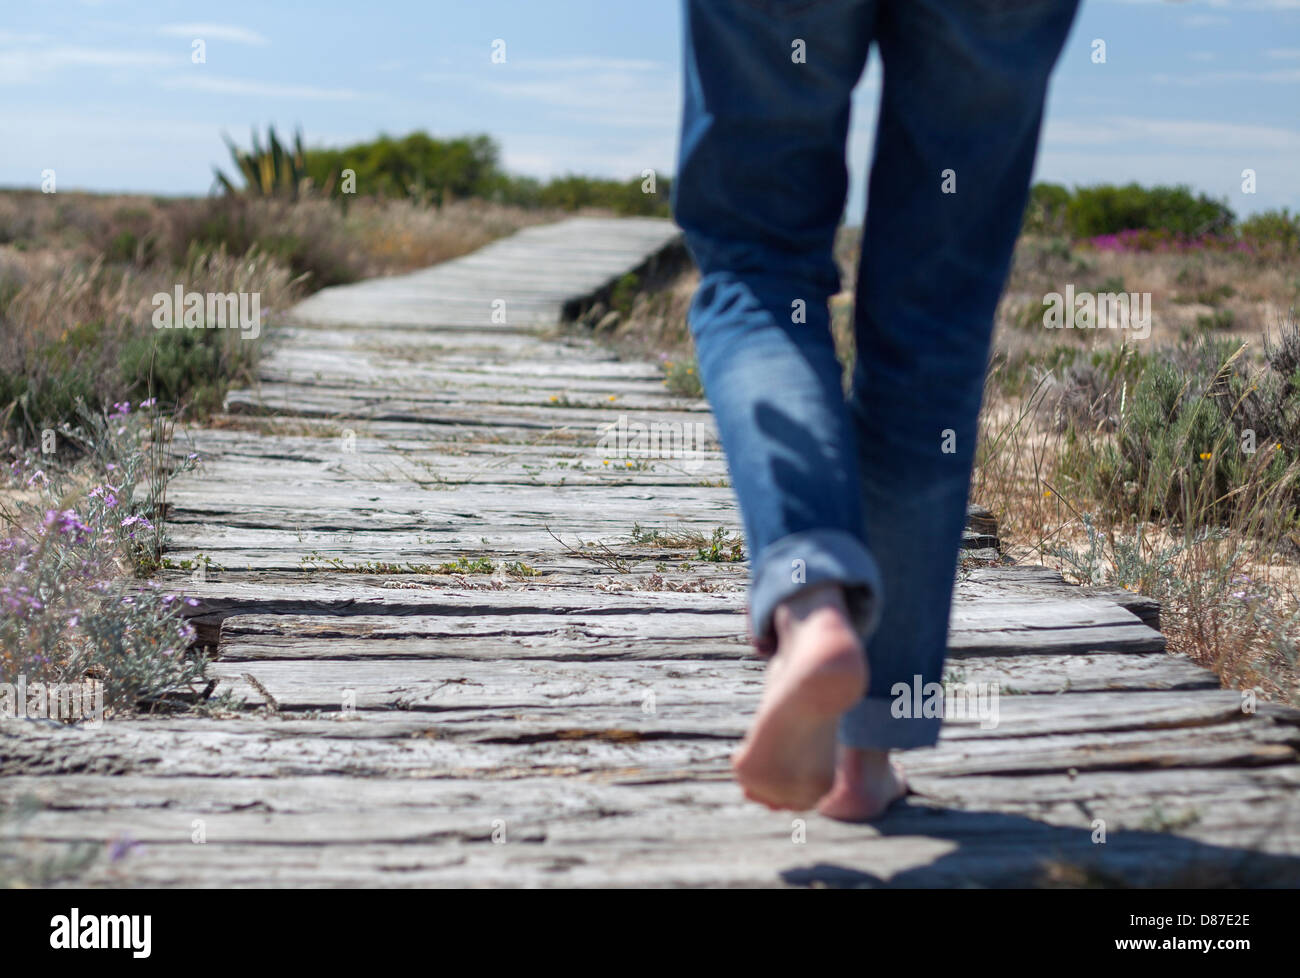 A woman walks barefoot on a wooden gangway in a desert island on a sunny day - Stock Image